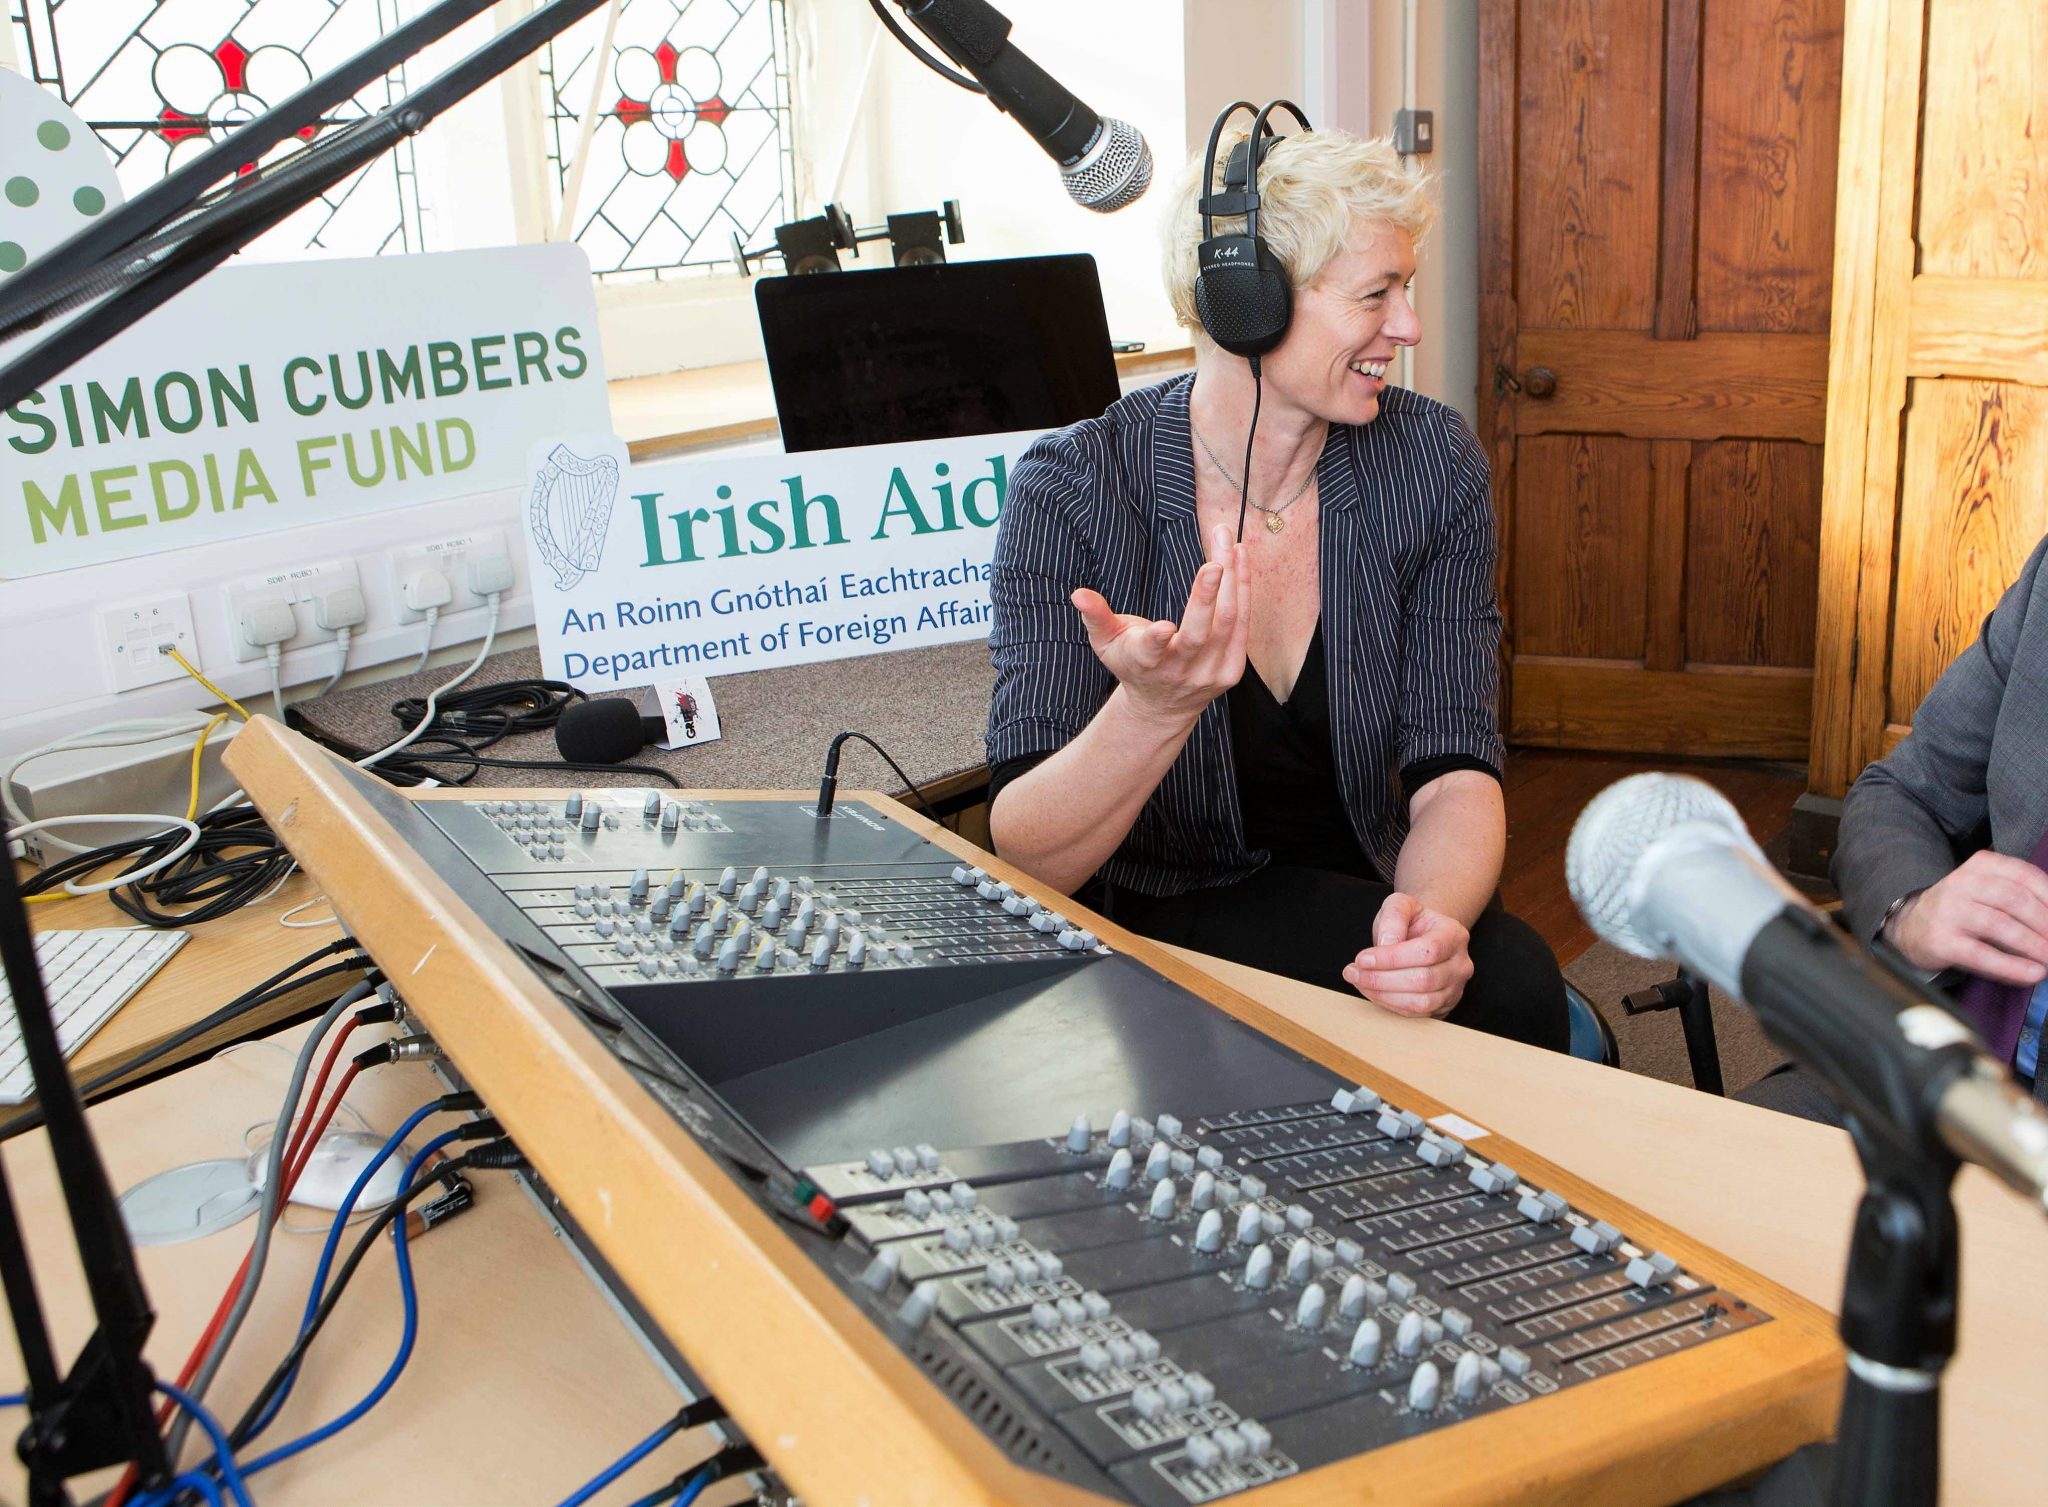 Simon Cumbers Media Fund for Irish Media Professionals 2018 (Winter Round)